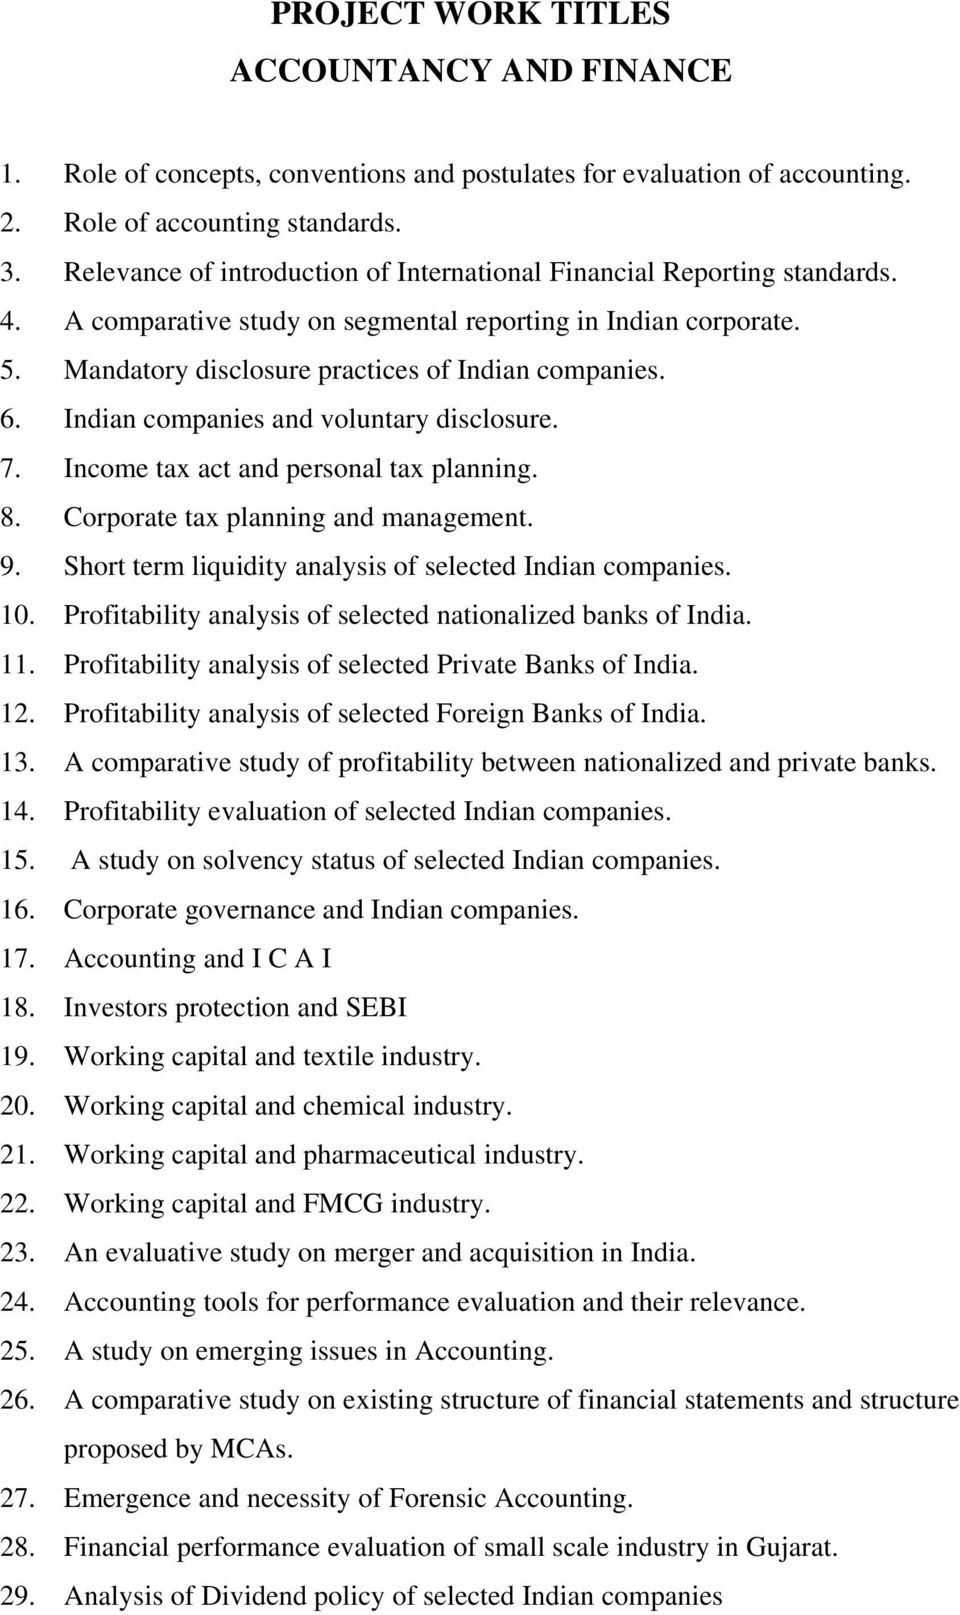 M COM SEMESTER IV PROPOSED PROJECT WORK TITLES COMMERCE FACULTY